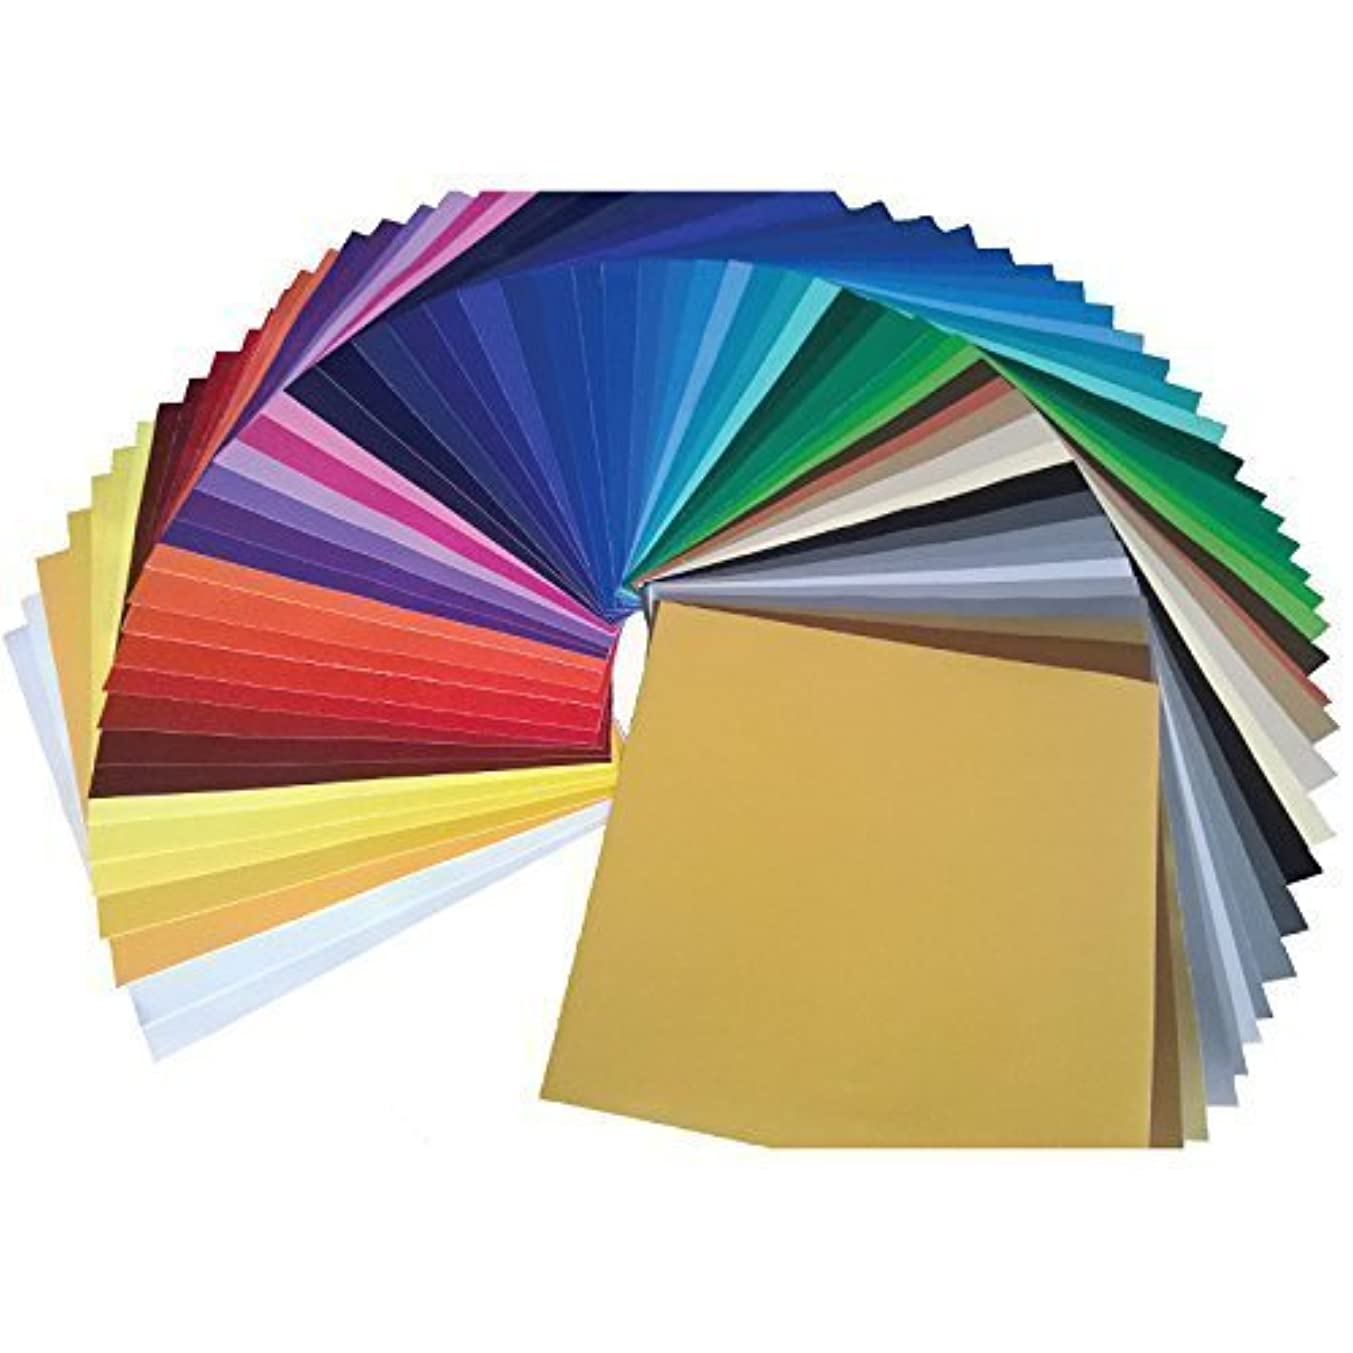 Oracal 651 Vinyl Sheets (63 Pack)